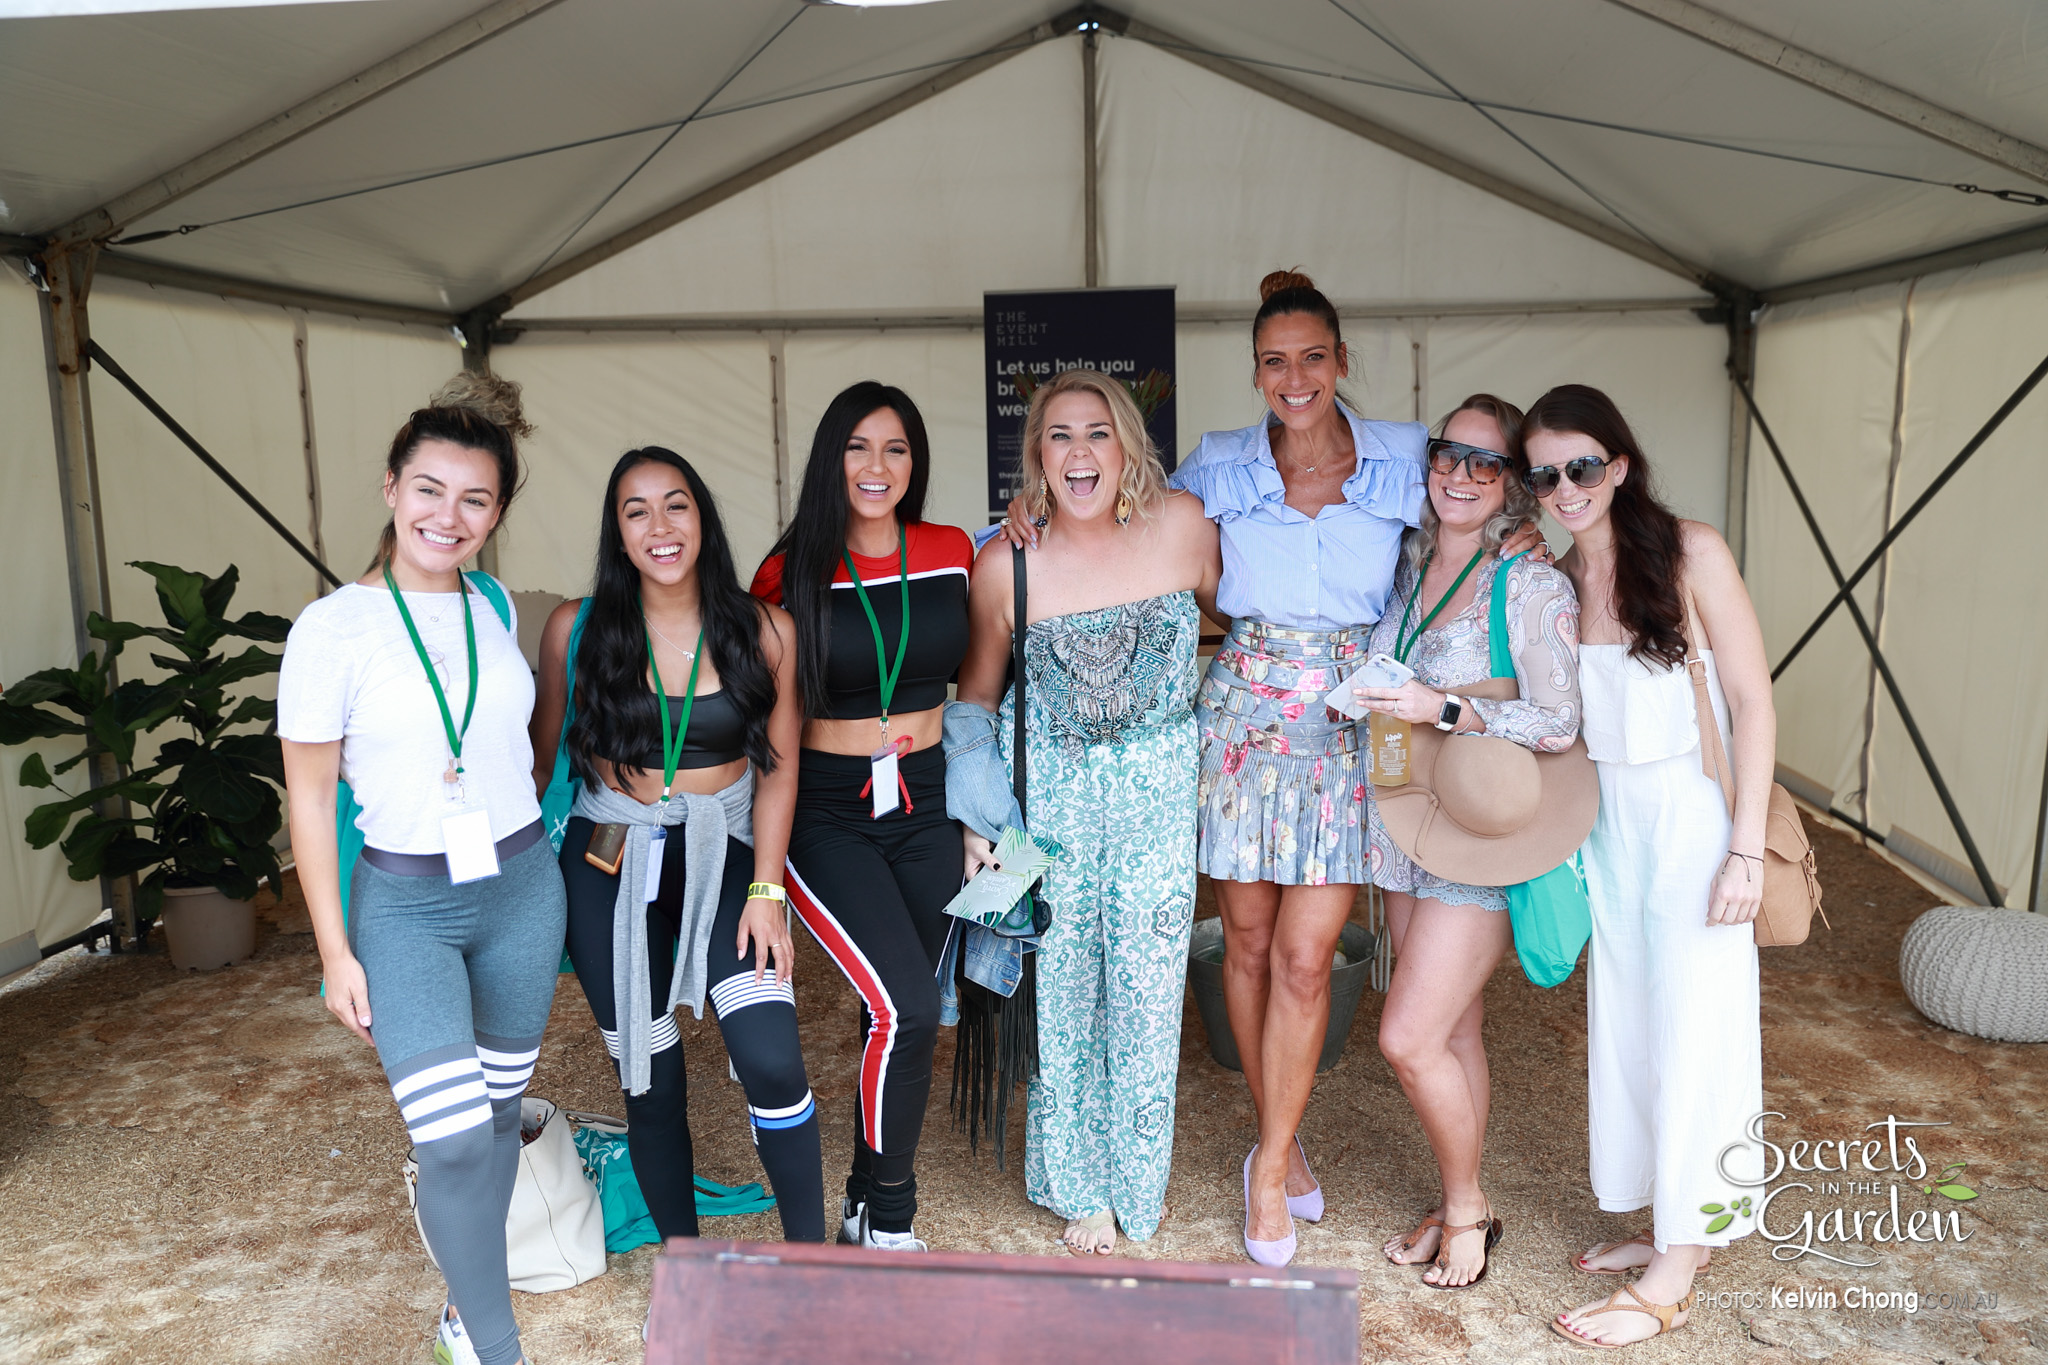 Perth Bloggers and VIP Guests in the Media Tent